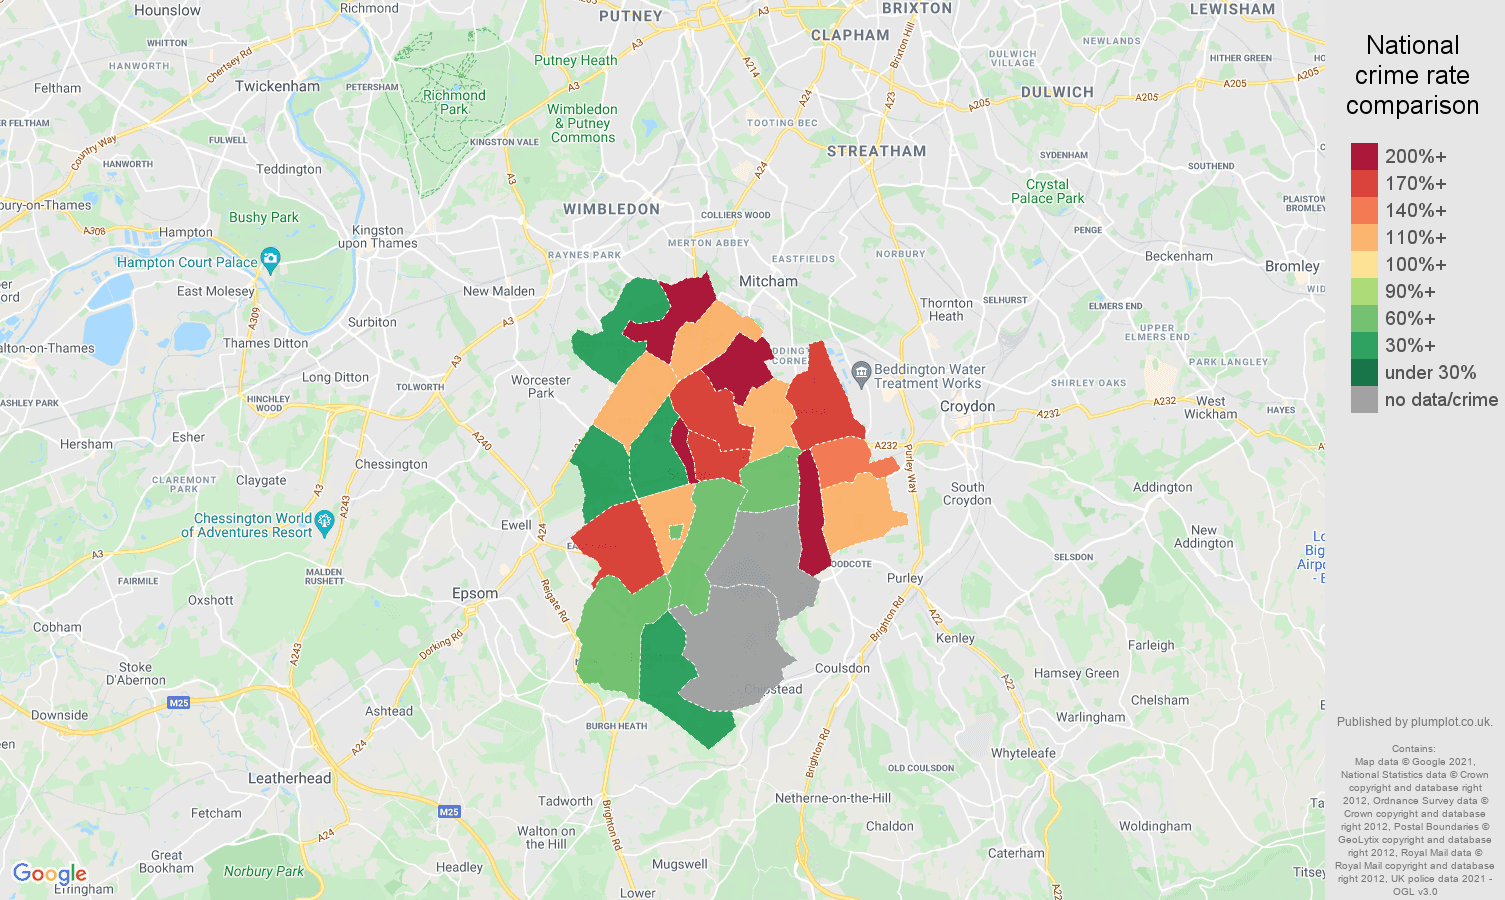 Sutton robbery crime rate comparison map